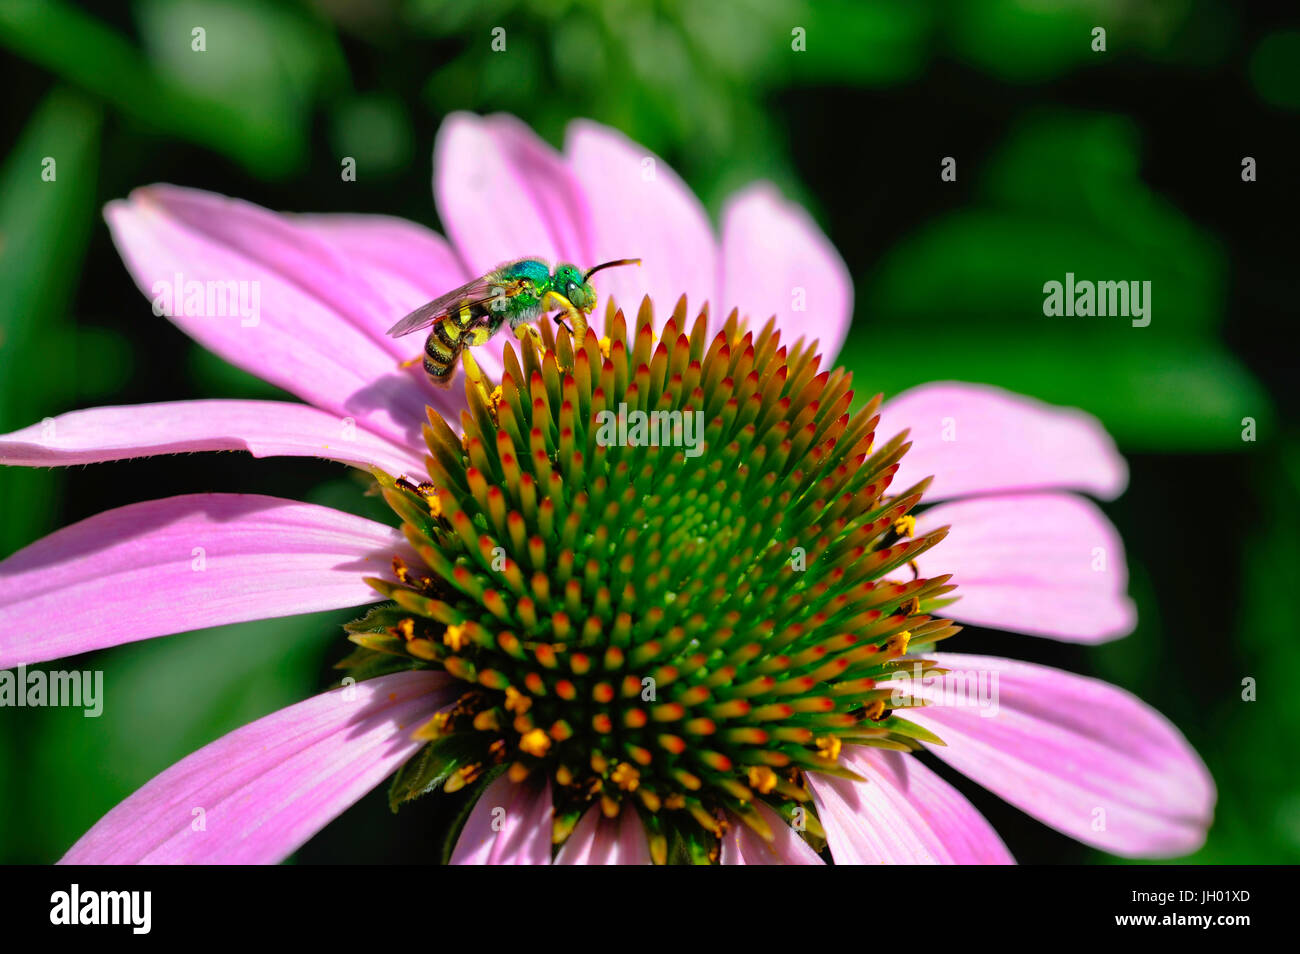 An iridescent green Sweat Bee examines the spiney center of a blooming Echinacea flower. - Stock Image